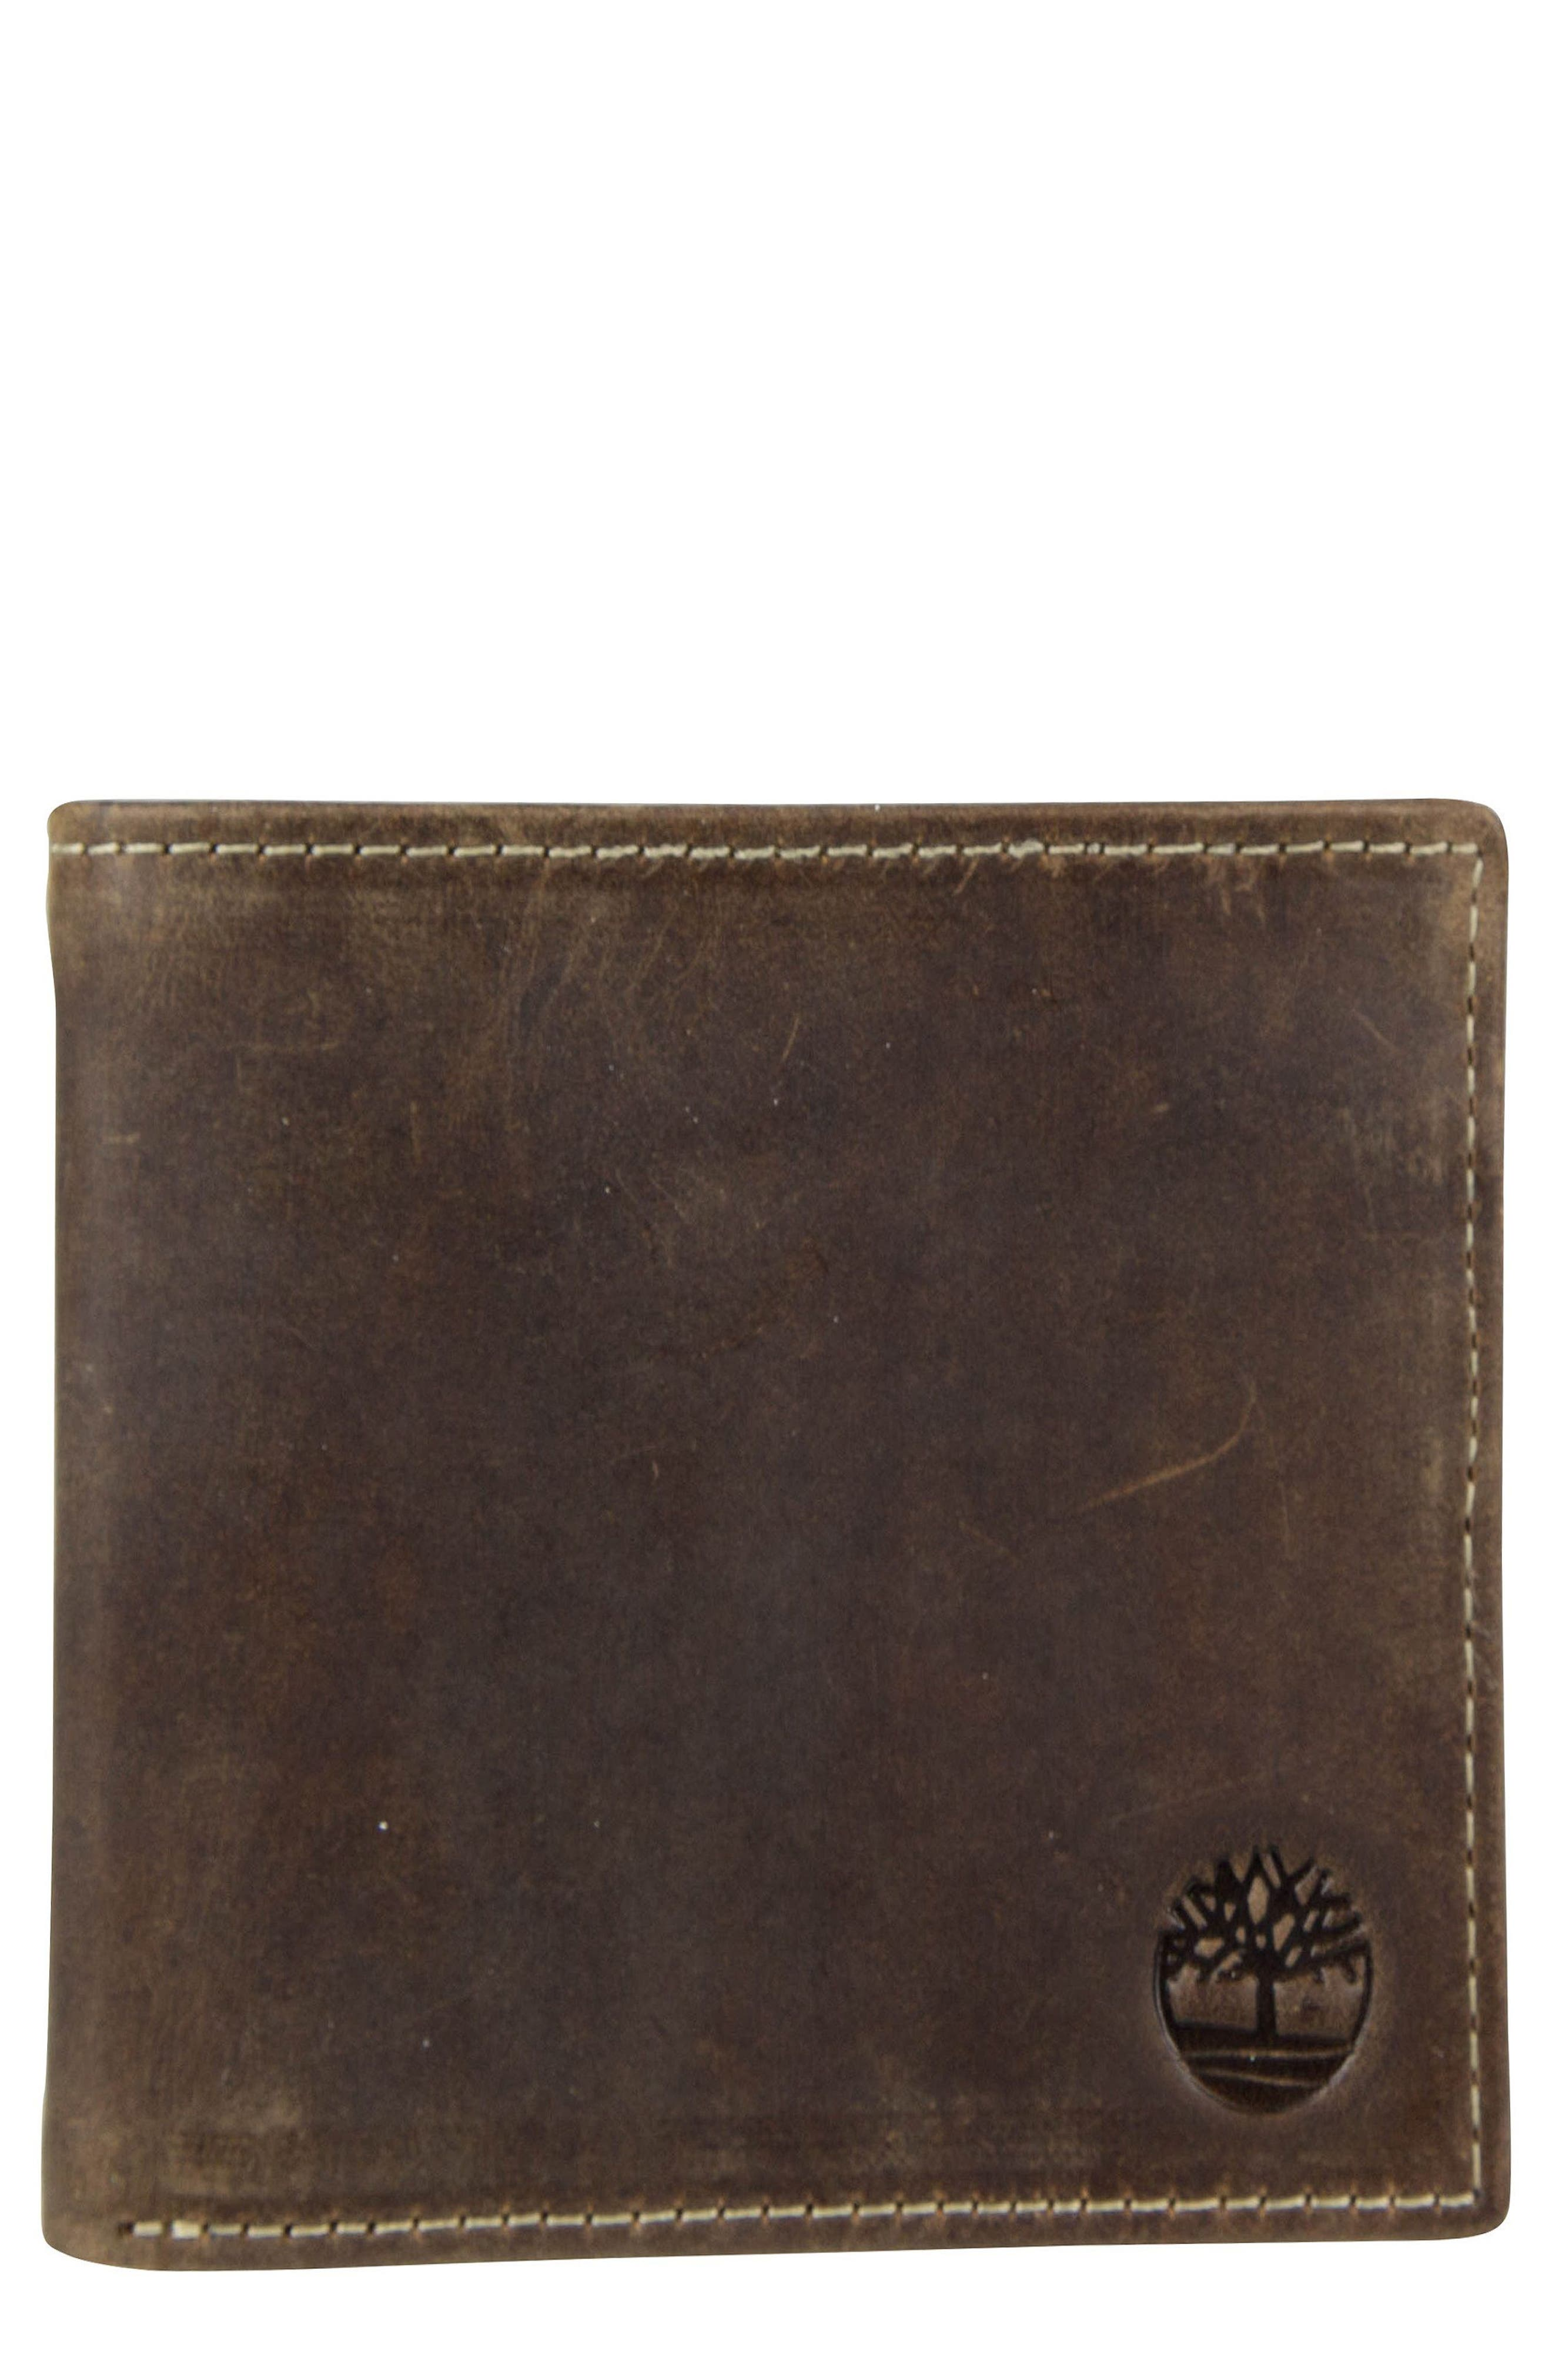 Distressed Leather Wallet,                             Main thumbnail 1, color,                             200